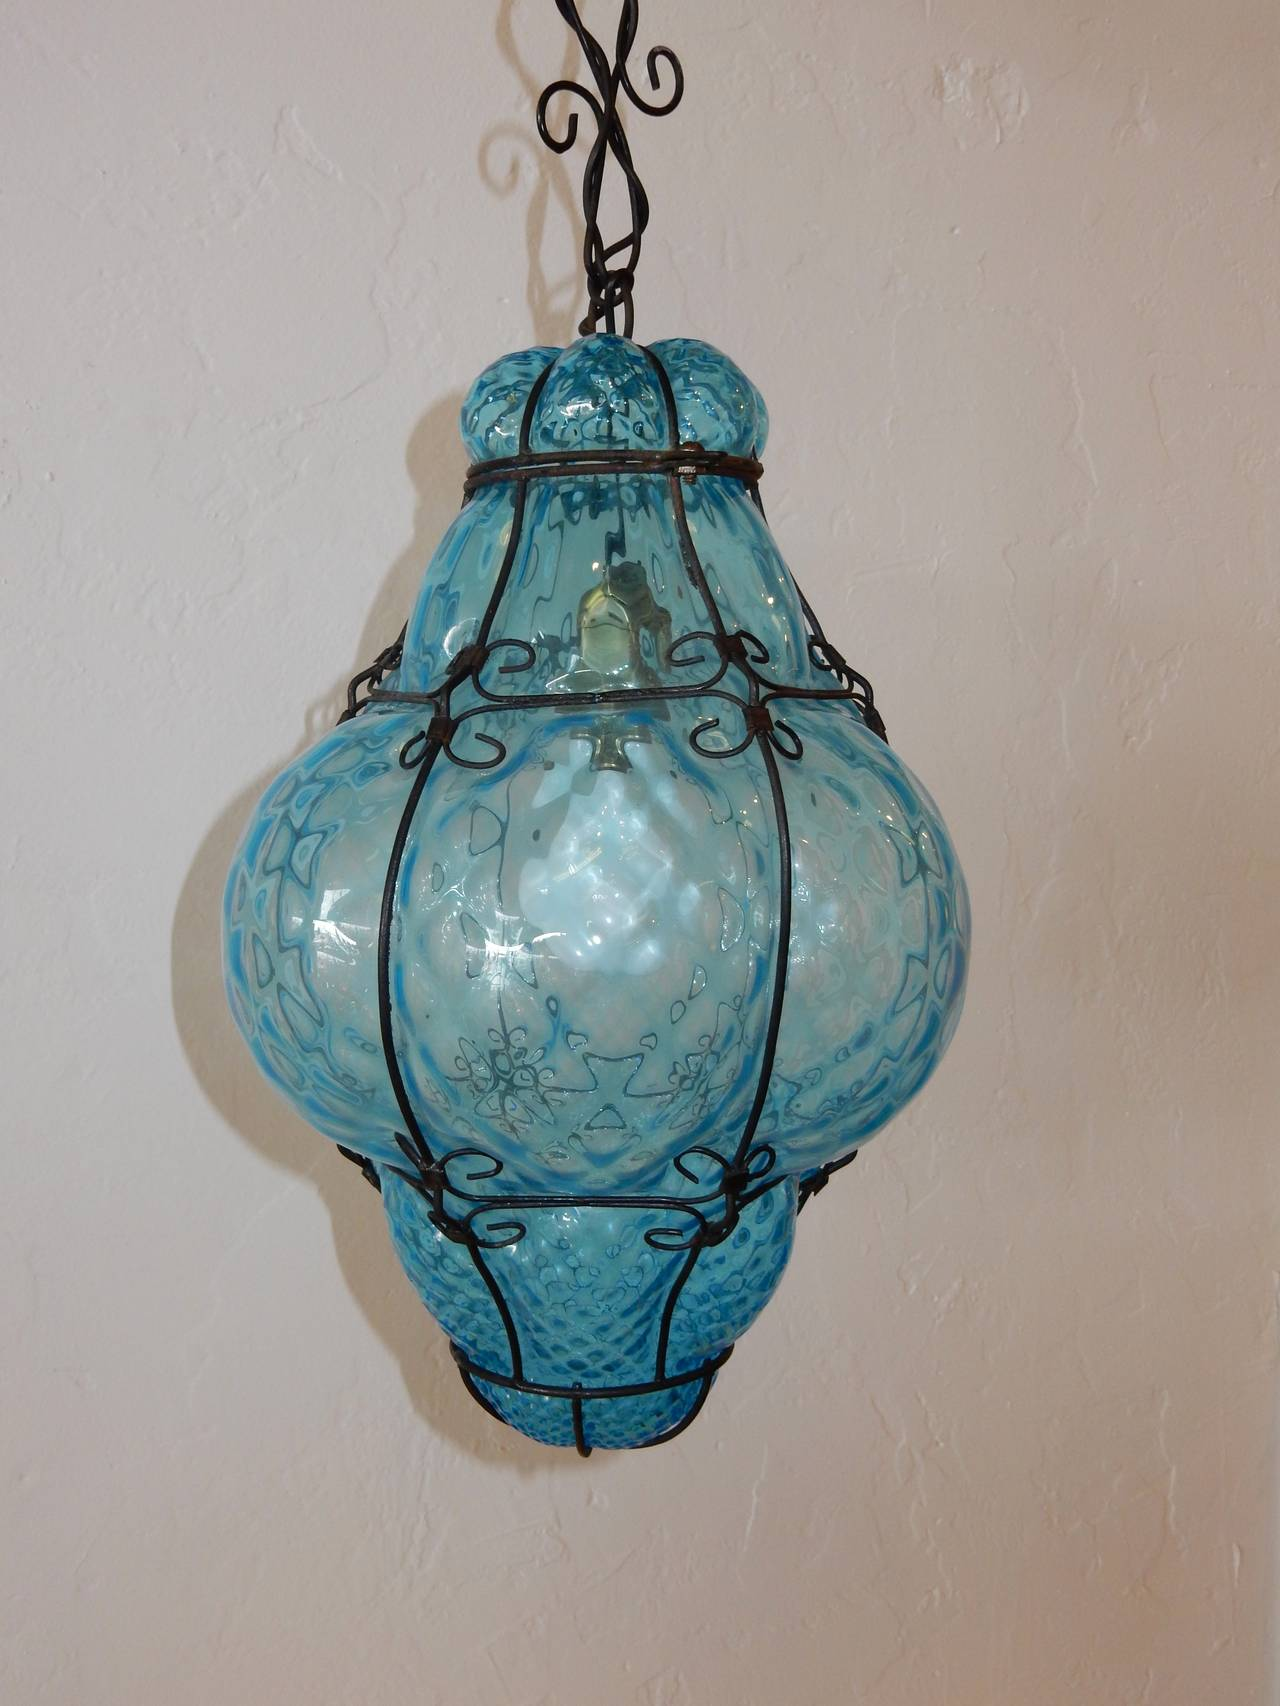 Italian cage art glass pendant lamp by seugso in aqua blue at 1stdibs hollywood regency italian cage art glass pendant lamp by seugso in aqua blue for sale aloadofball Image collections